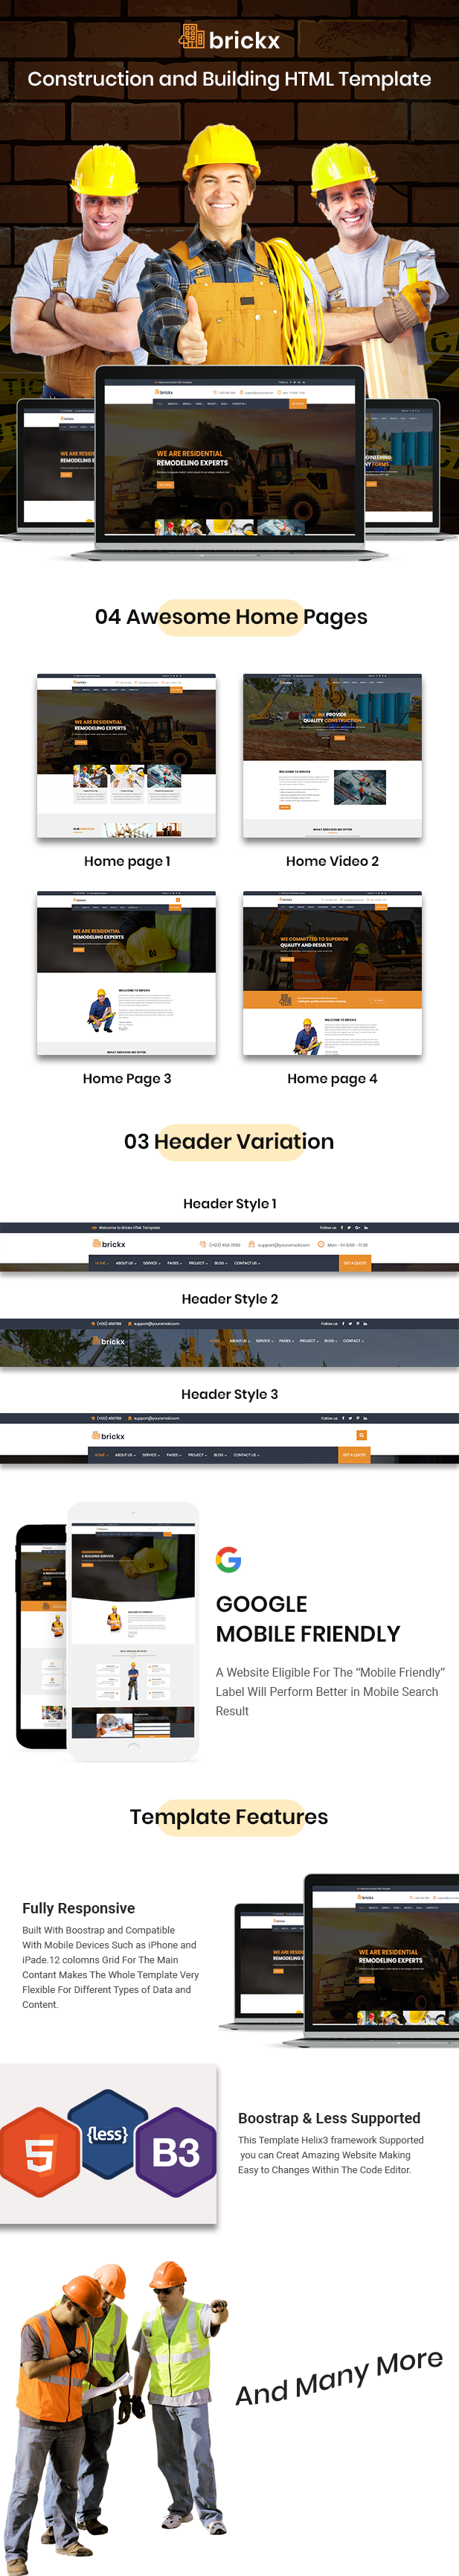 Brickx - Building & Construction HTML Template